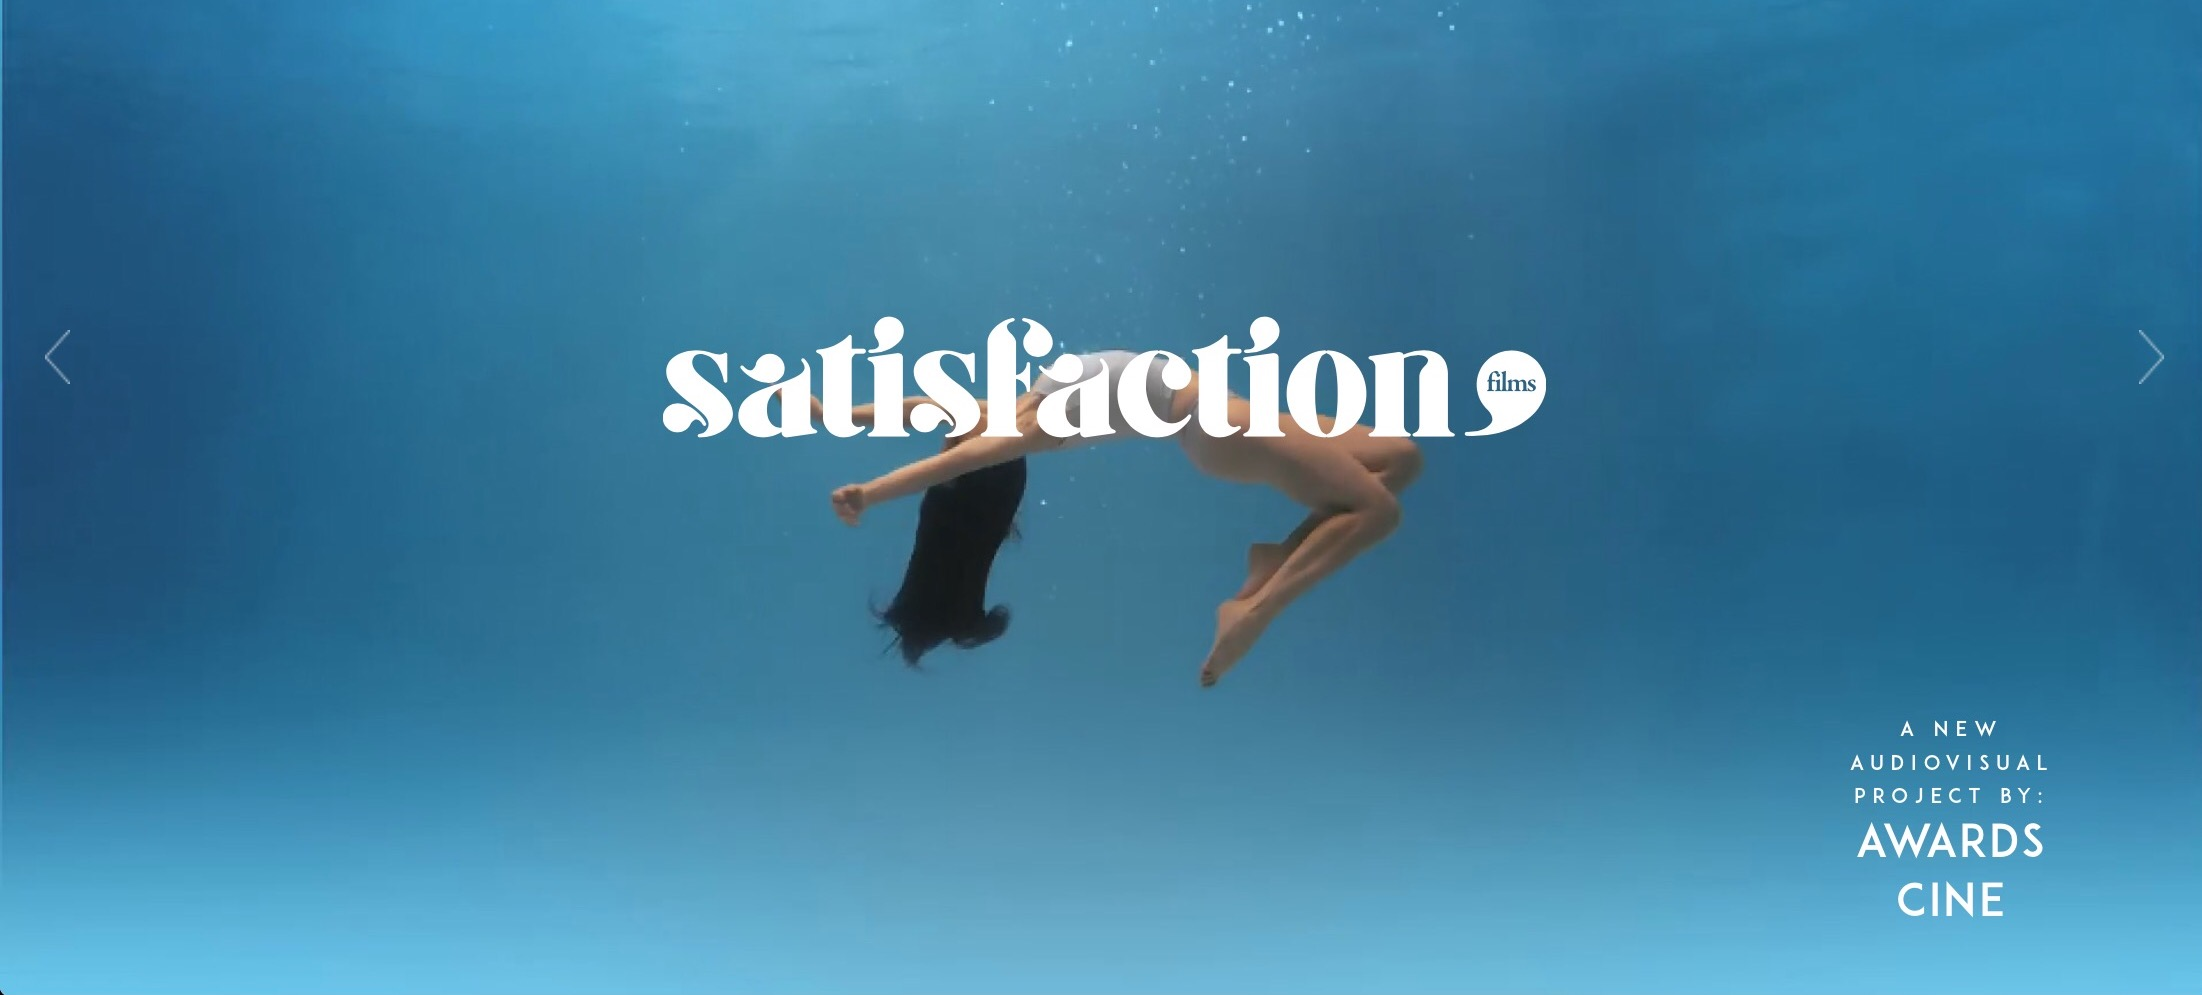 SATISFACTION FILMS…alvaje…!!!